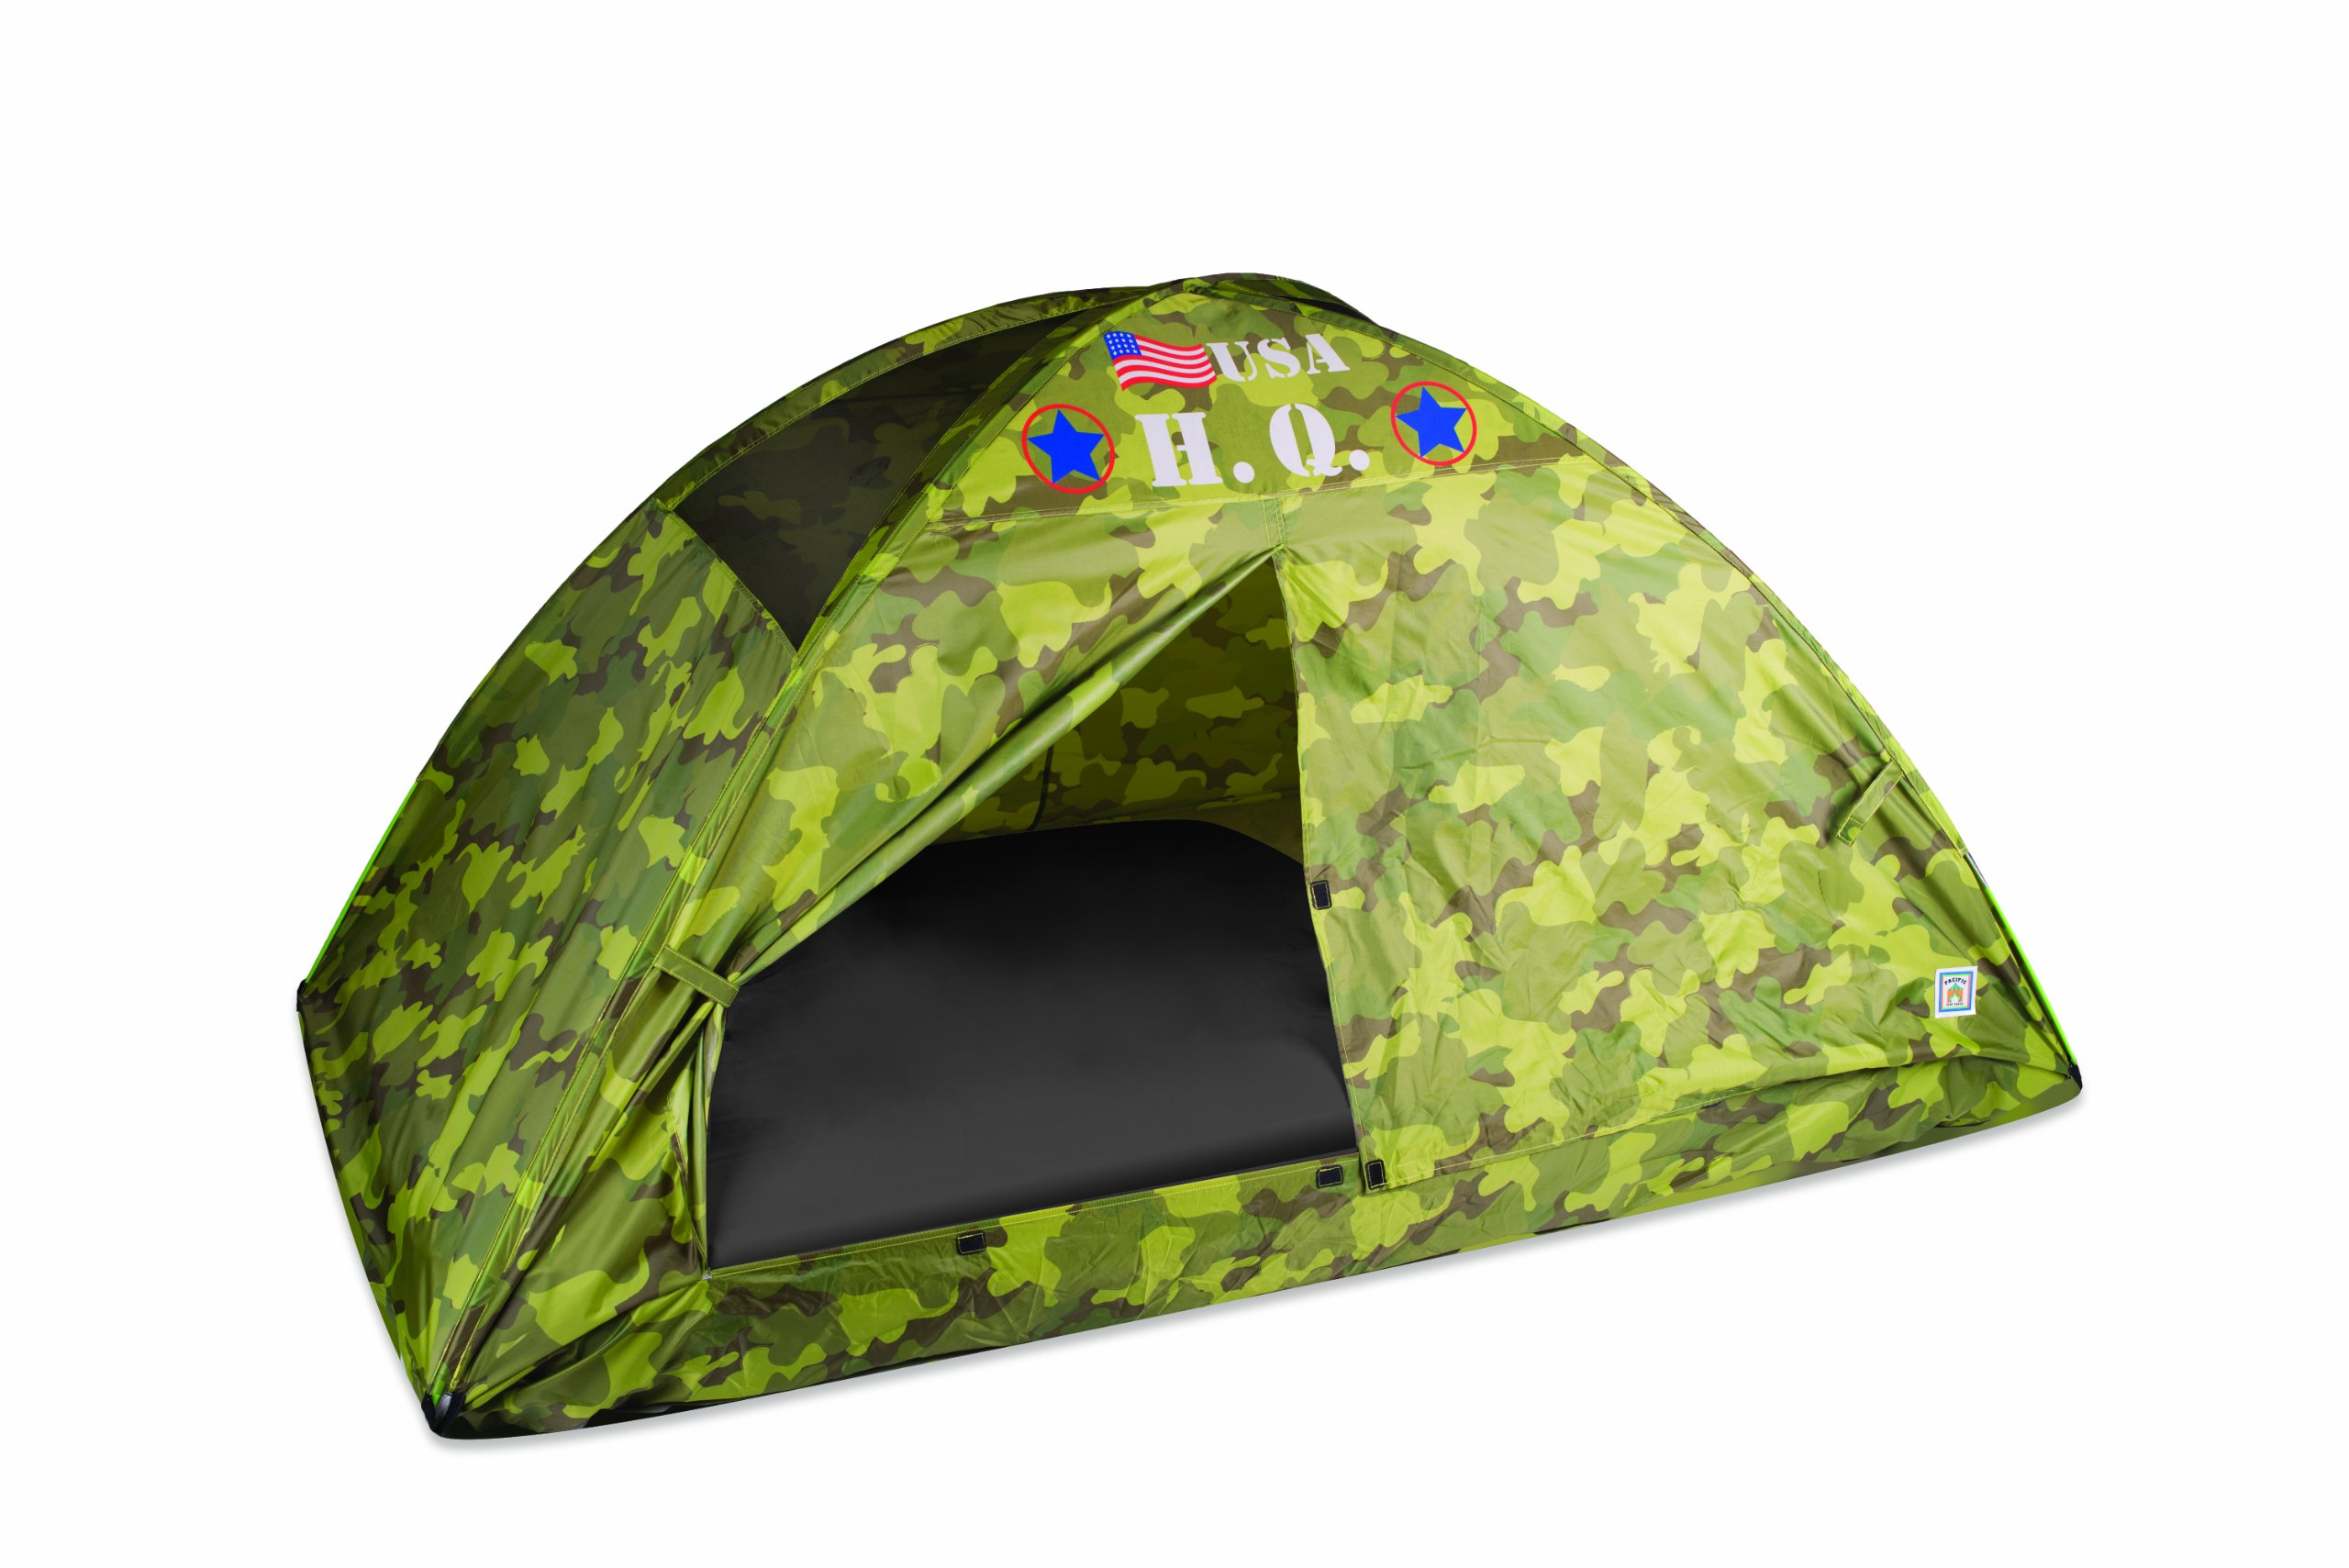 Pacific Play Tents 19780CAMOUFLAGE Kids HQ Camo Bed Tent Playhouse - Twin Size by Pacific Play Tents